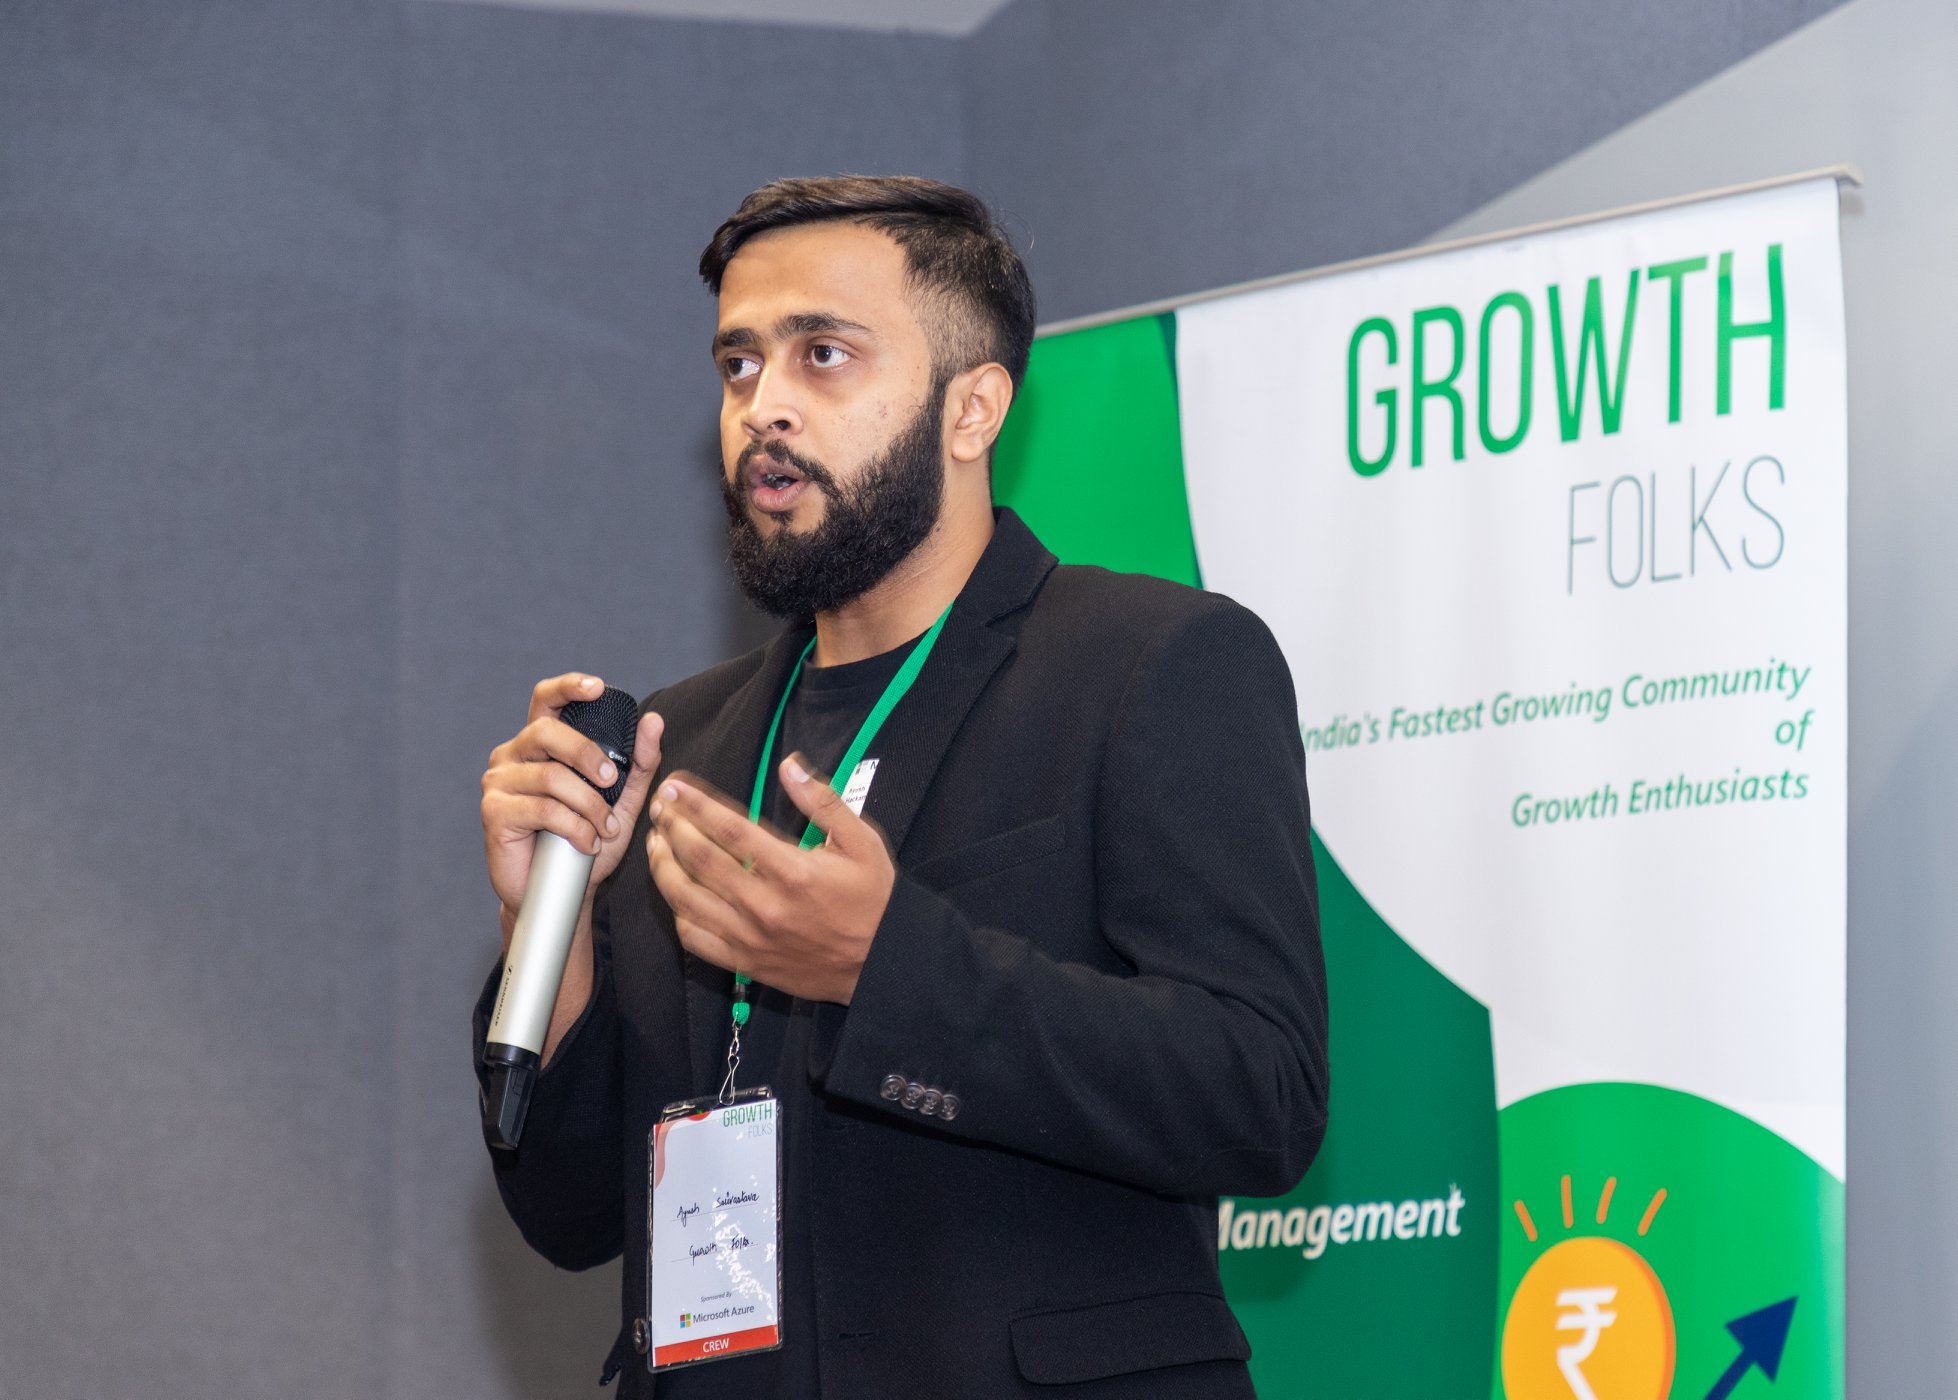 building-a-growth-community-in-india-with-ayush-srivastava-of-growth-folks